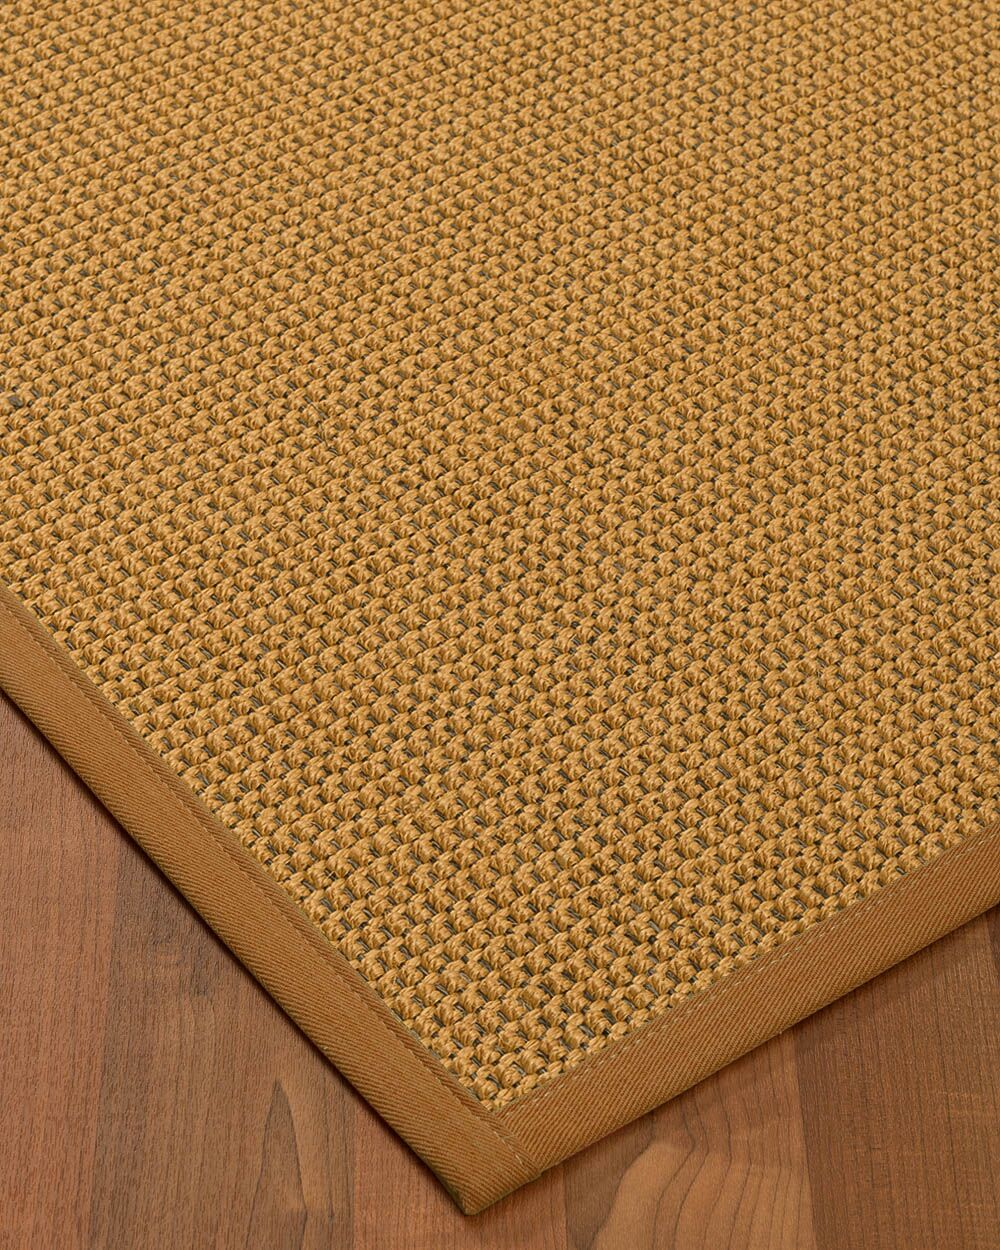 Atia Border Hand-Woven Beige/Sienna Area Rug Rug Size: Rectangle 5' x 8', Rug Pad Included: Yes